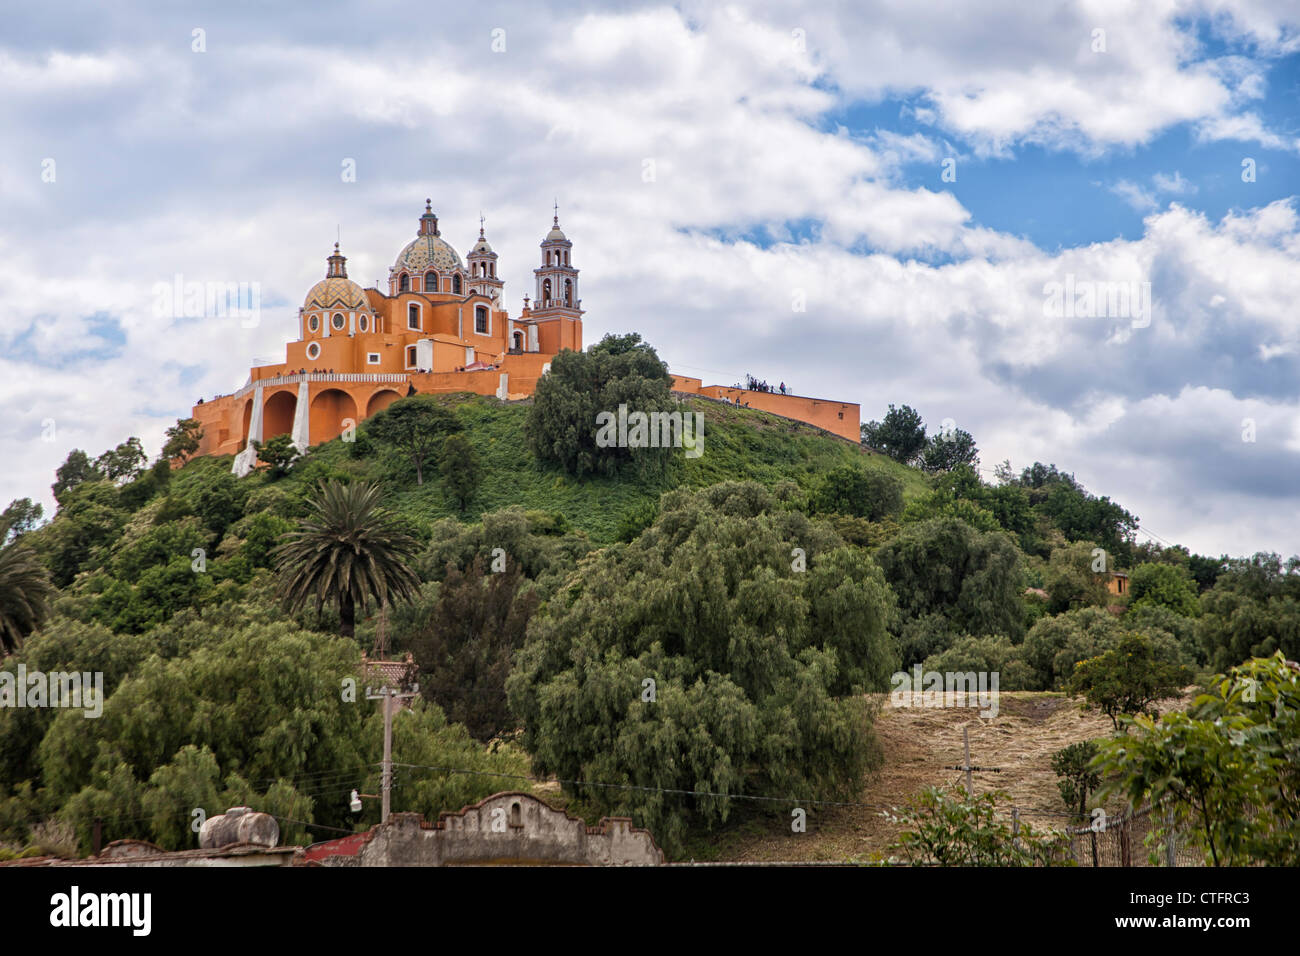 Church of Neustra Senor de los Remedios or Our Lady of Remedios - Stock Image